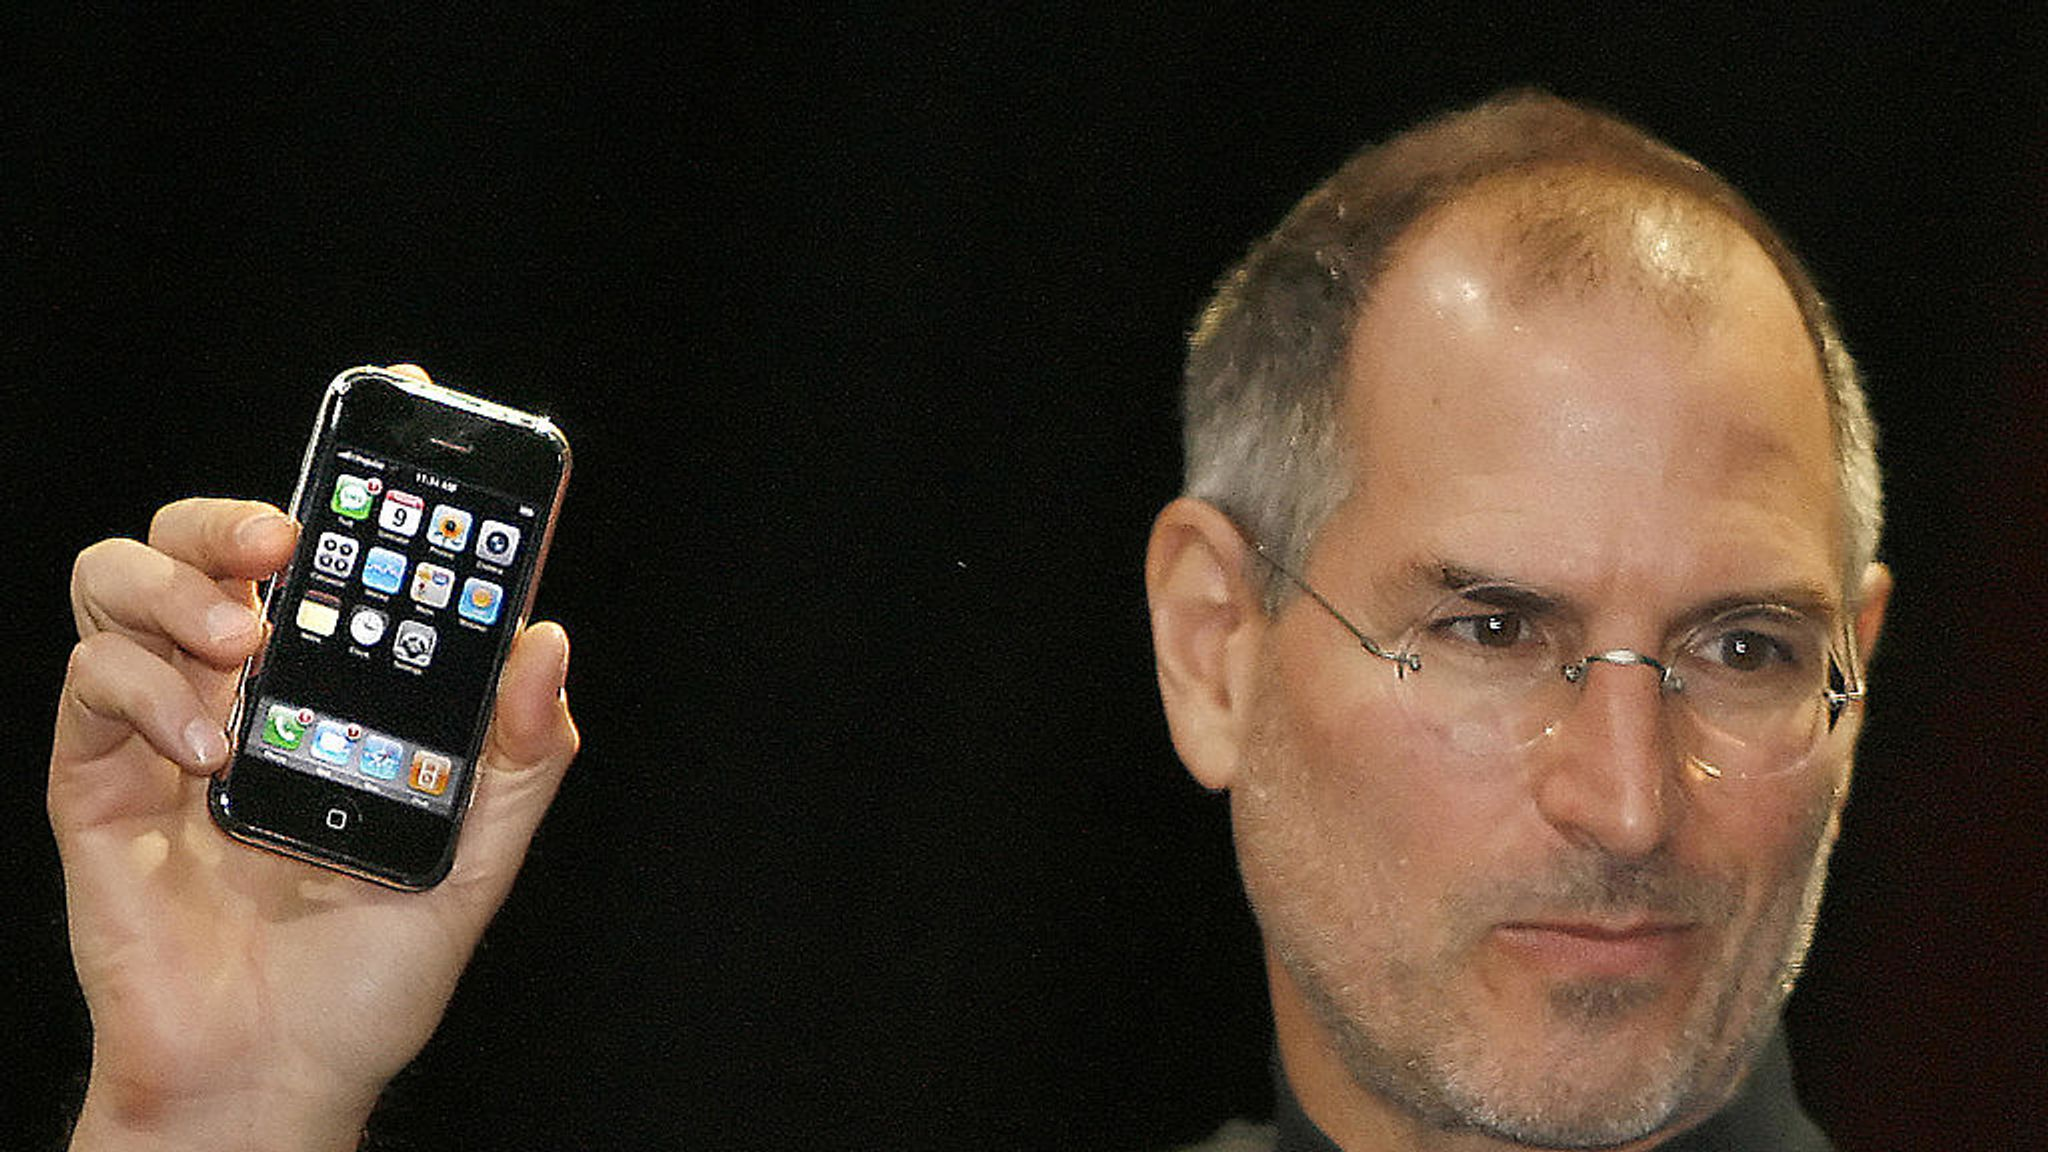 Apple S Iphone Unveiled By Steve Jobs 10 Years Ago Science